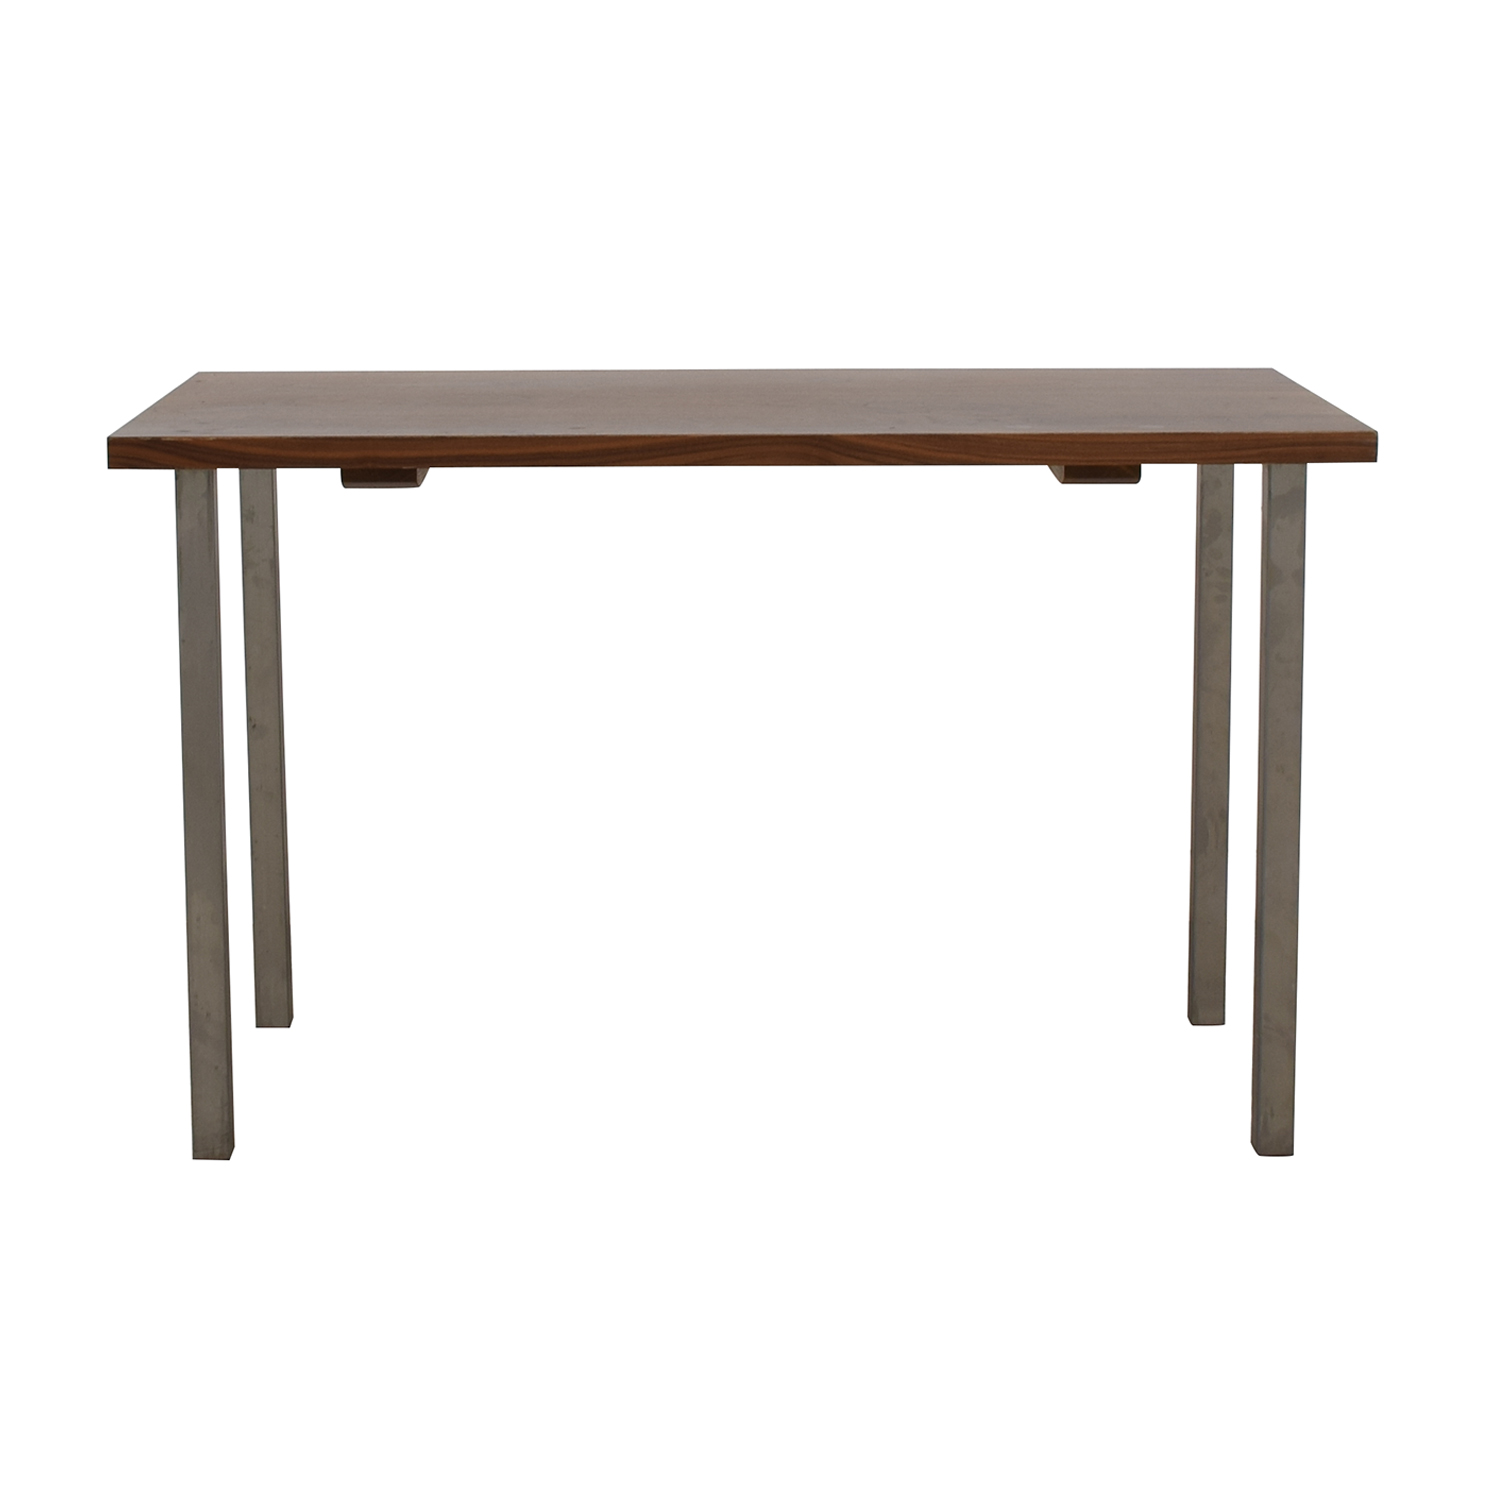 Room & Board Rand Natural Wood and Steel Table sale